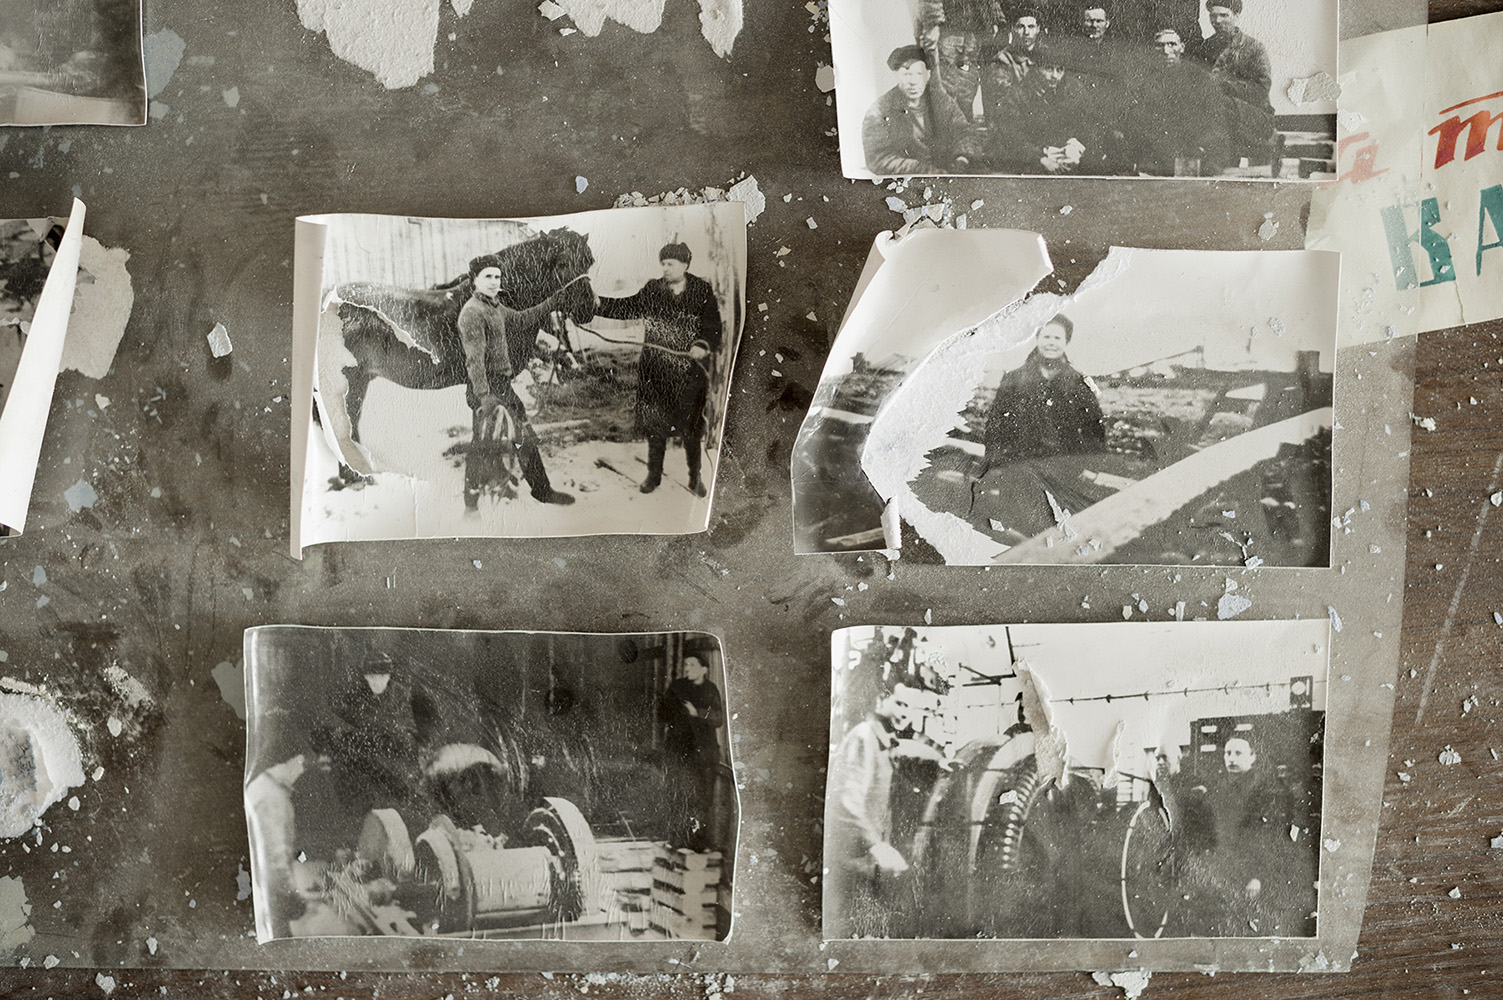 Old faded photographs from the Soviet Union at the glory days of the PyramidPyramiden is a Russian settlement and coal mining community on the archipelago of Svalbard, Norway. Founded by Sweden in 1910 and sold to the Soviet Union in 1927, Pyramiden was closed in 1998 and has since remained largely abandoned with most of its infrastructure and buildings still in place.